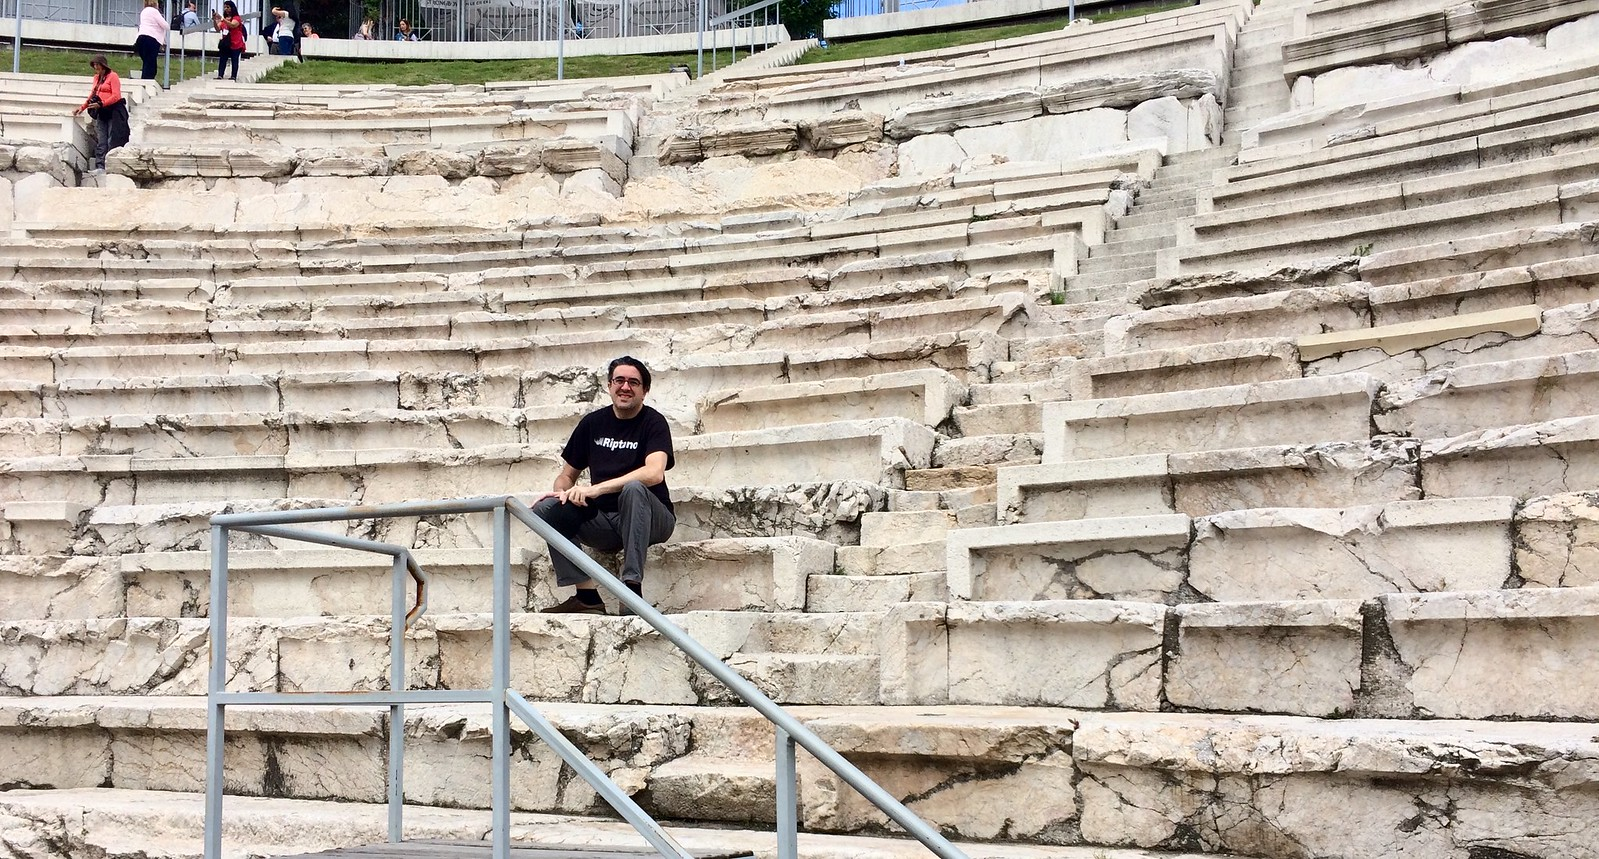 201705 - Balkans - Ancient Roman Theater - 14 of 89 - Plovdiv - Hadji Hasan Mahala - Plovdiv, May 22, 2017